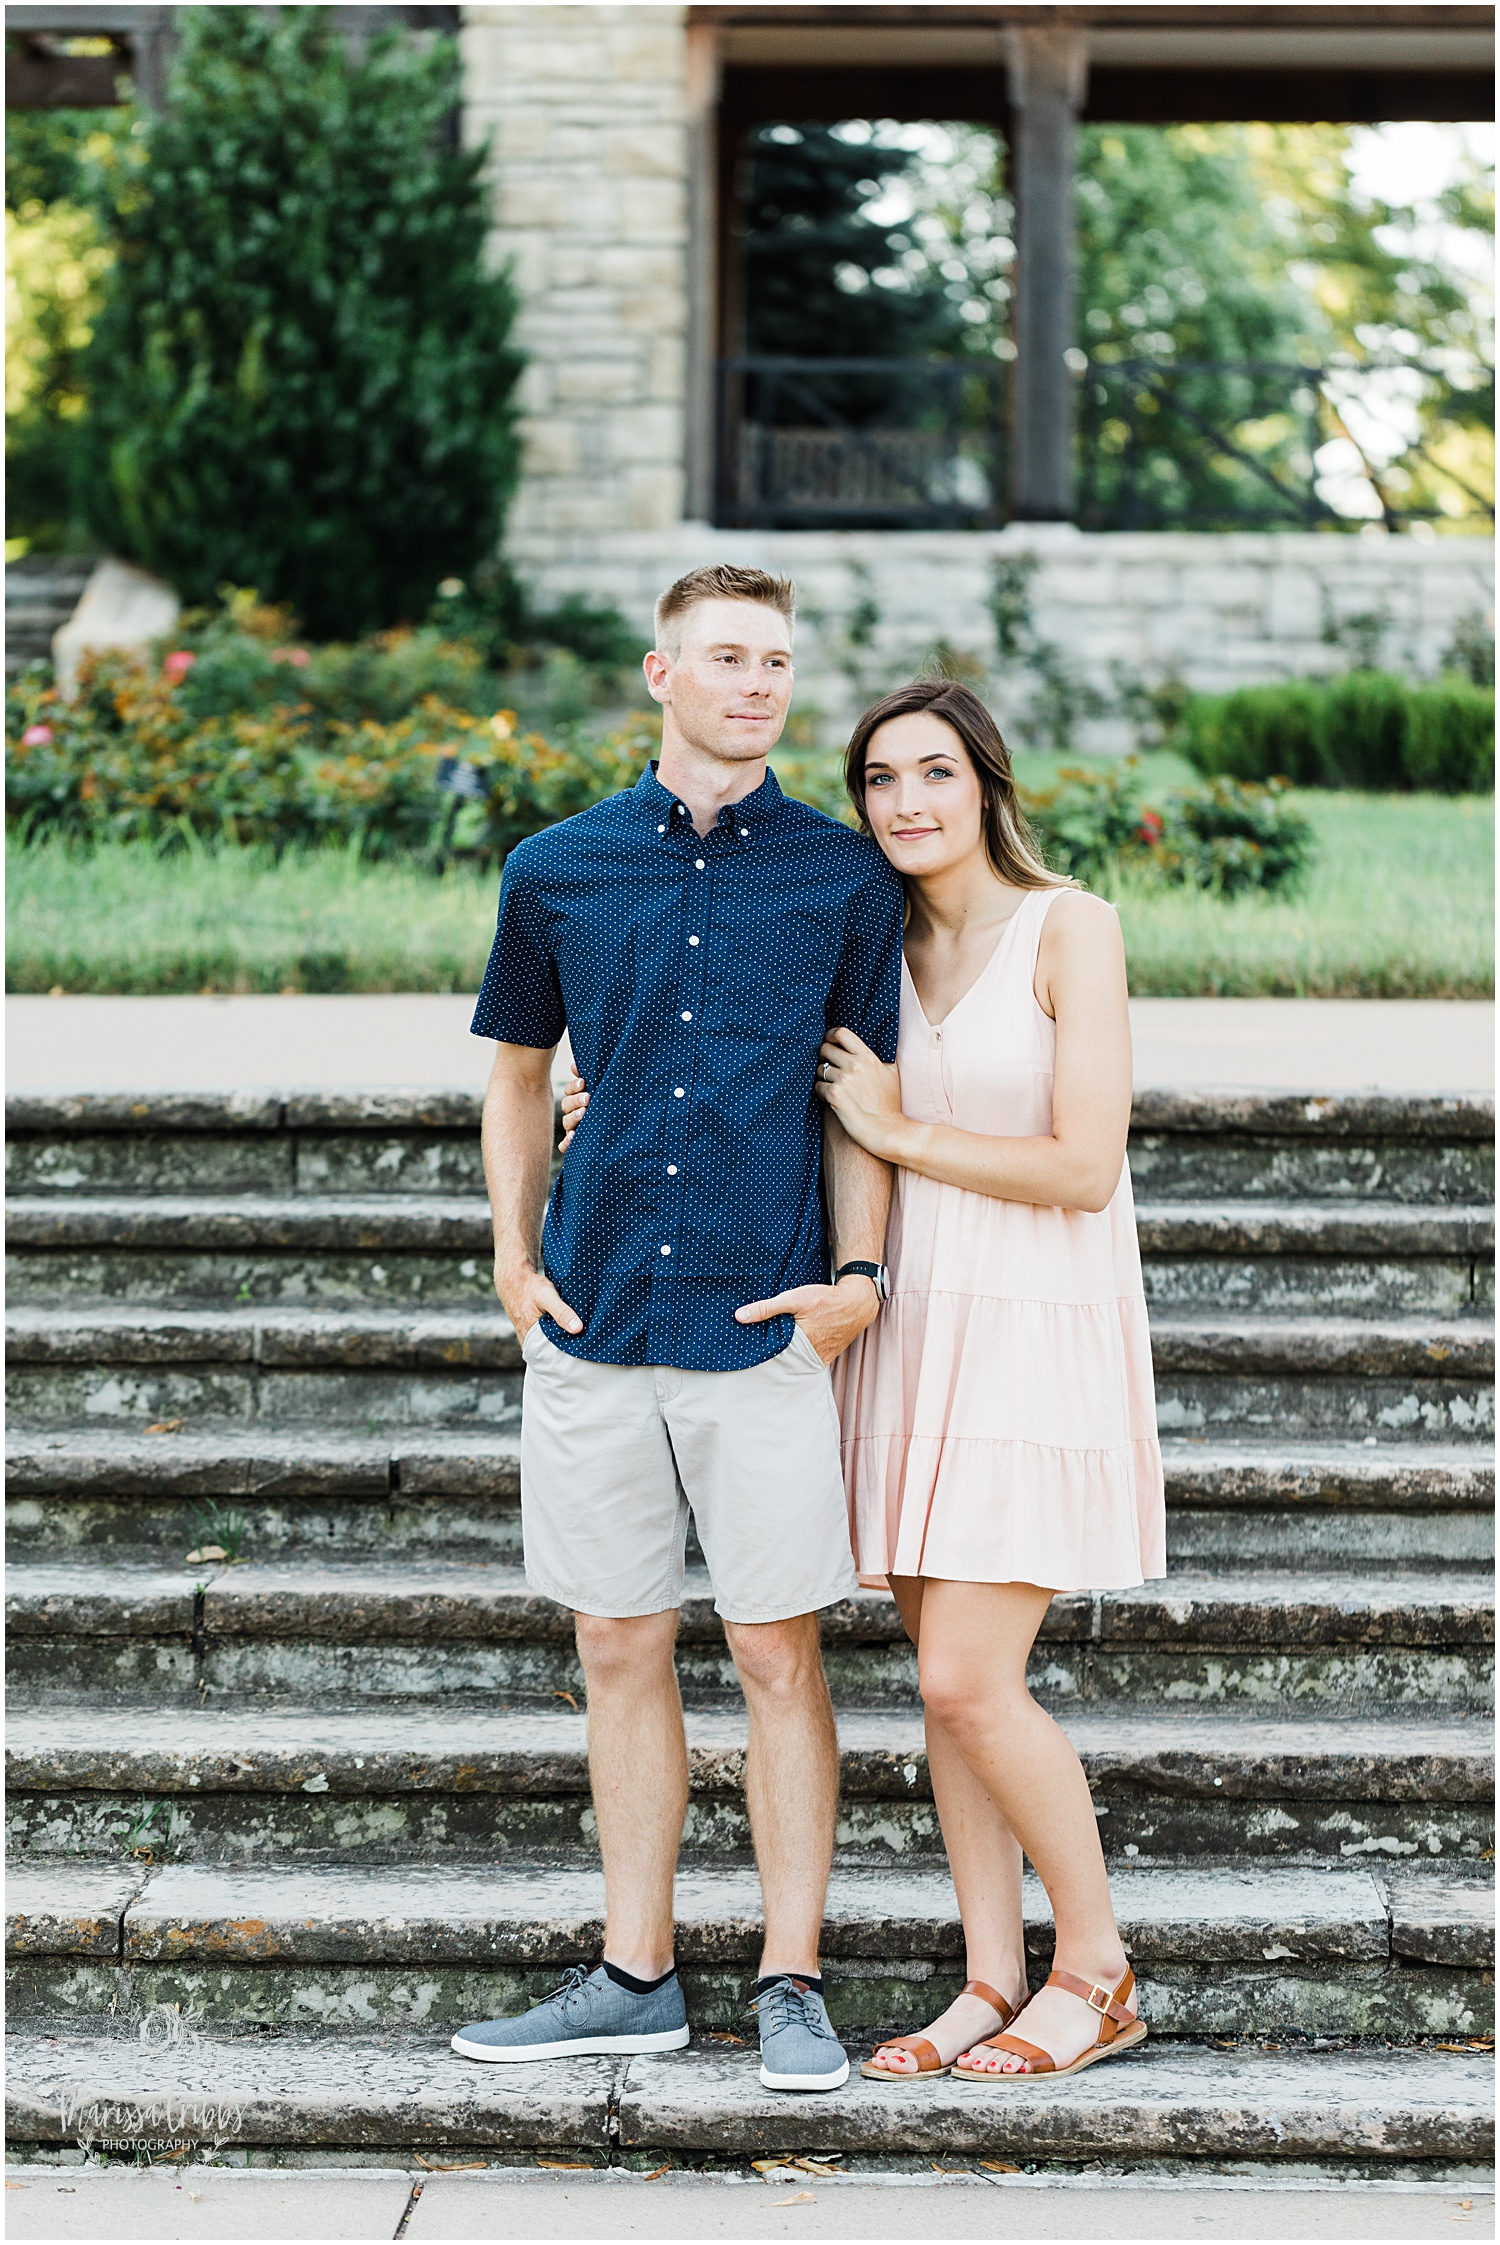 KELSEY & MICHAEL ENGAGEMENT BLOG | MARISSA CRIBBS PHOTOGRAPHY_8446.jpg